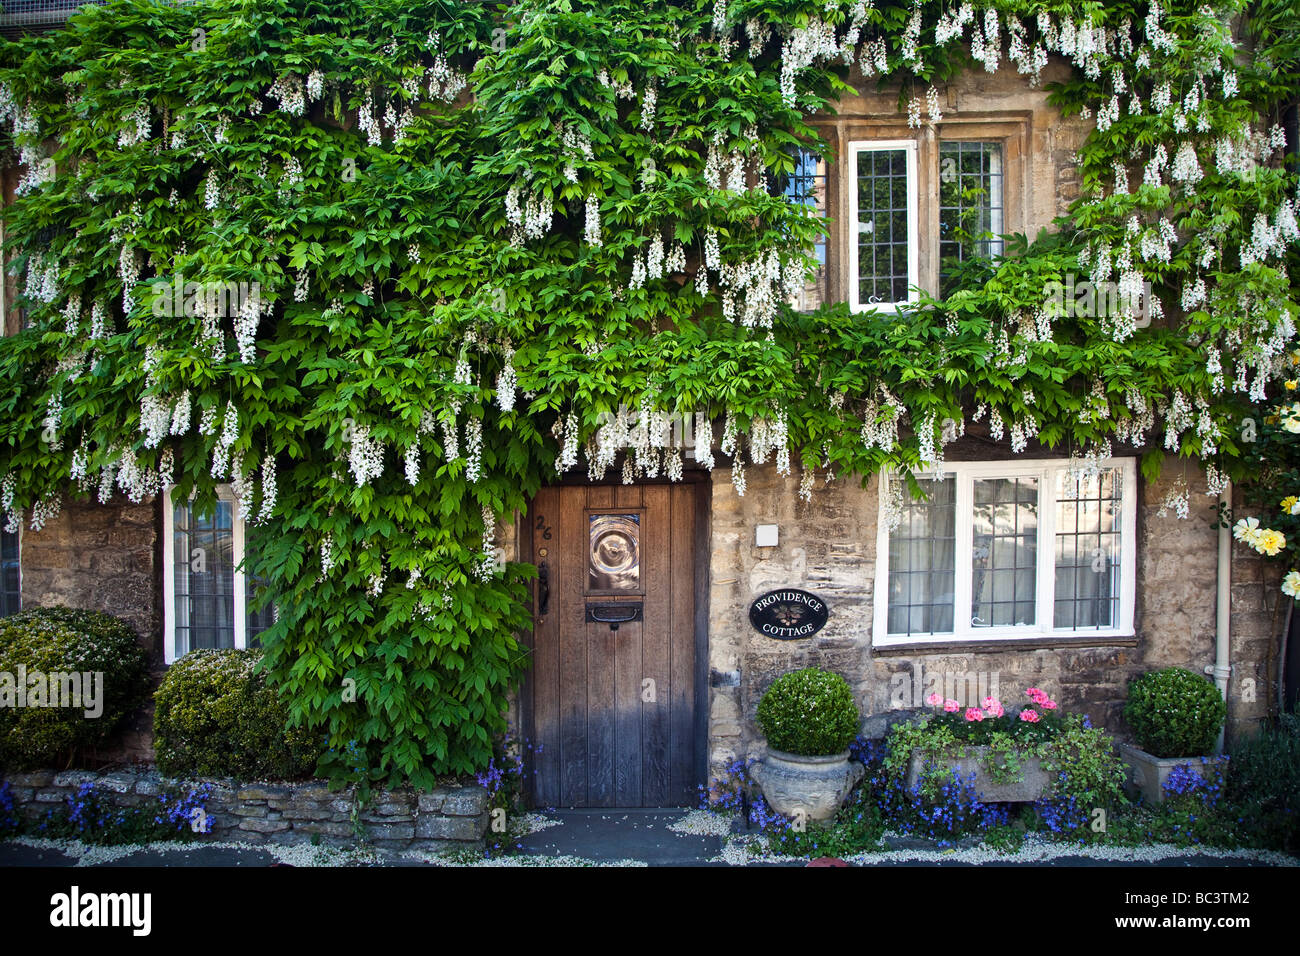 Cottage High Street Burford Oxfordshire in the Cotswolds - Stock Image